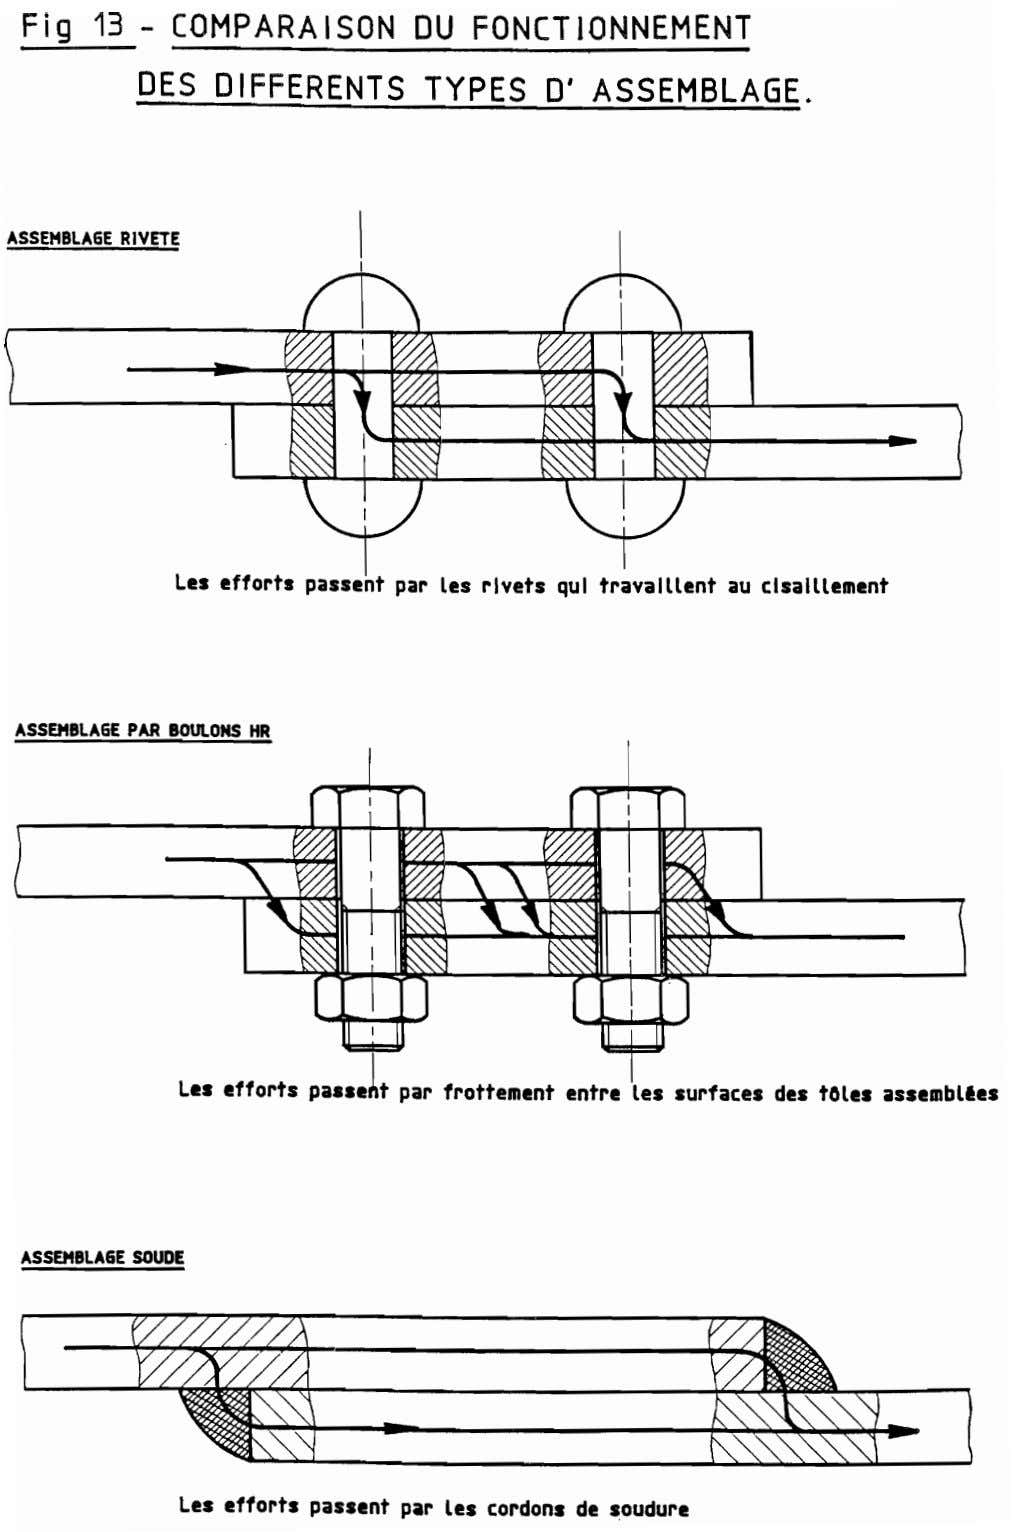 Fig 13 - COMPARA 1SON DU FONCT IONNEMENT DES DIFFERENTS TYPES D'ASSEMBLAGE. ASSEMBLAGE RIVETE Les